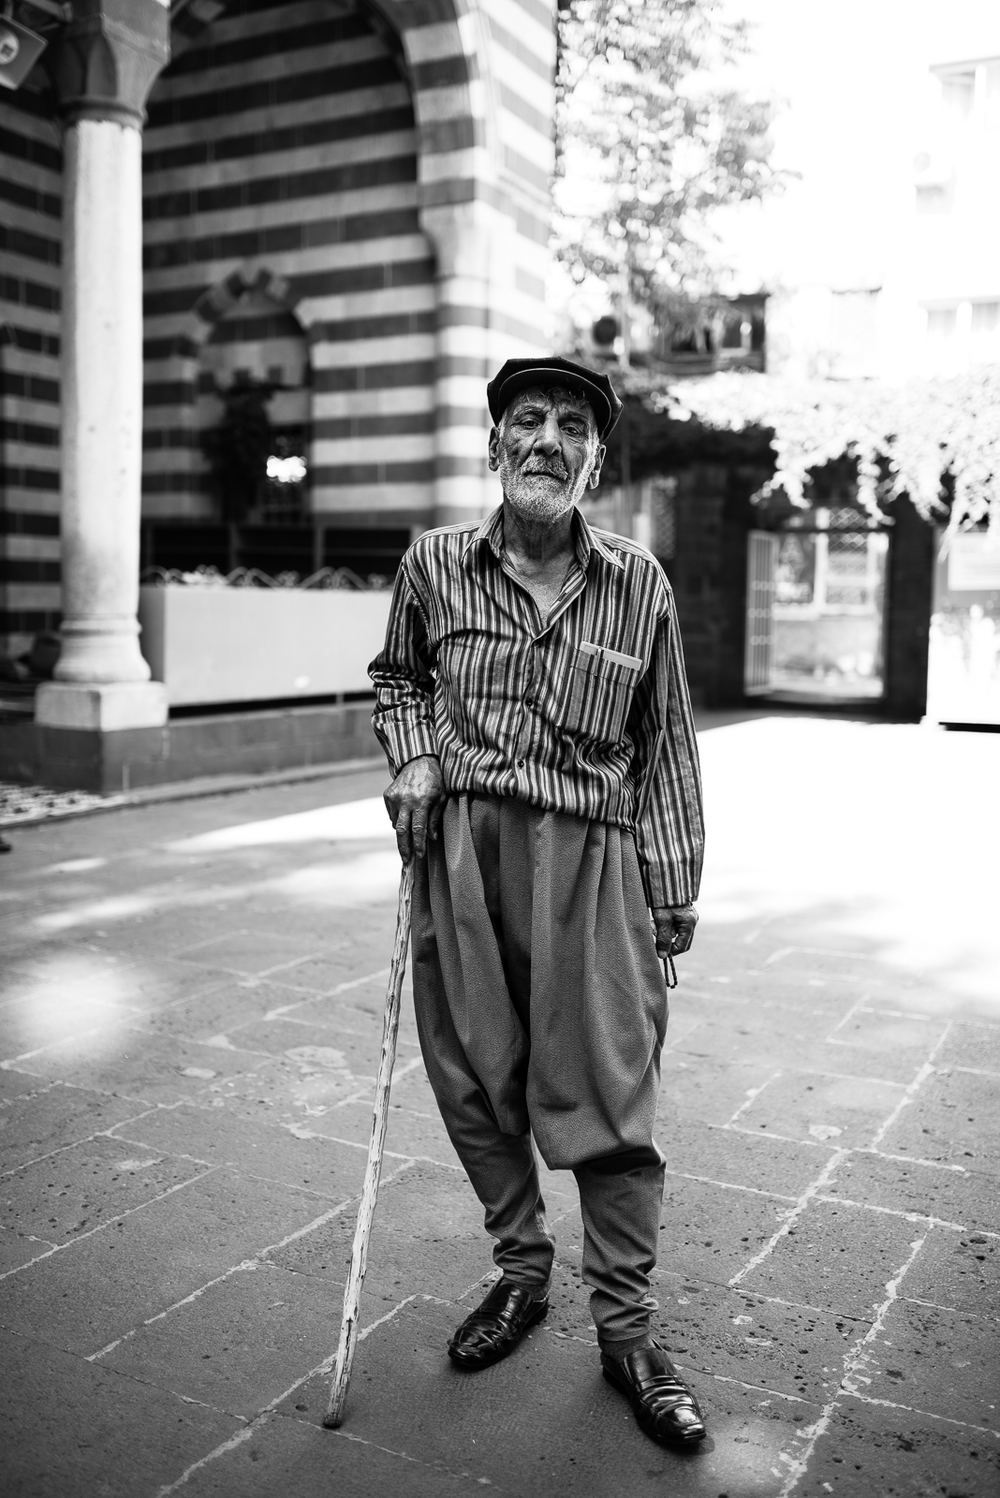 A typical kurdish old man in Diyarbakir